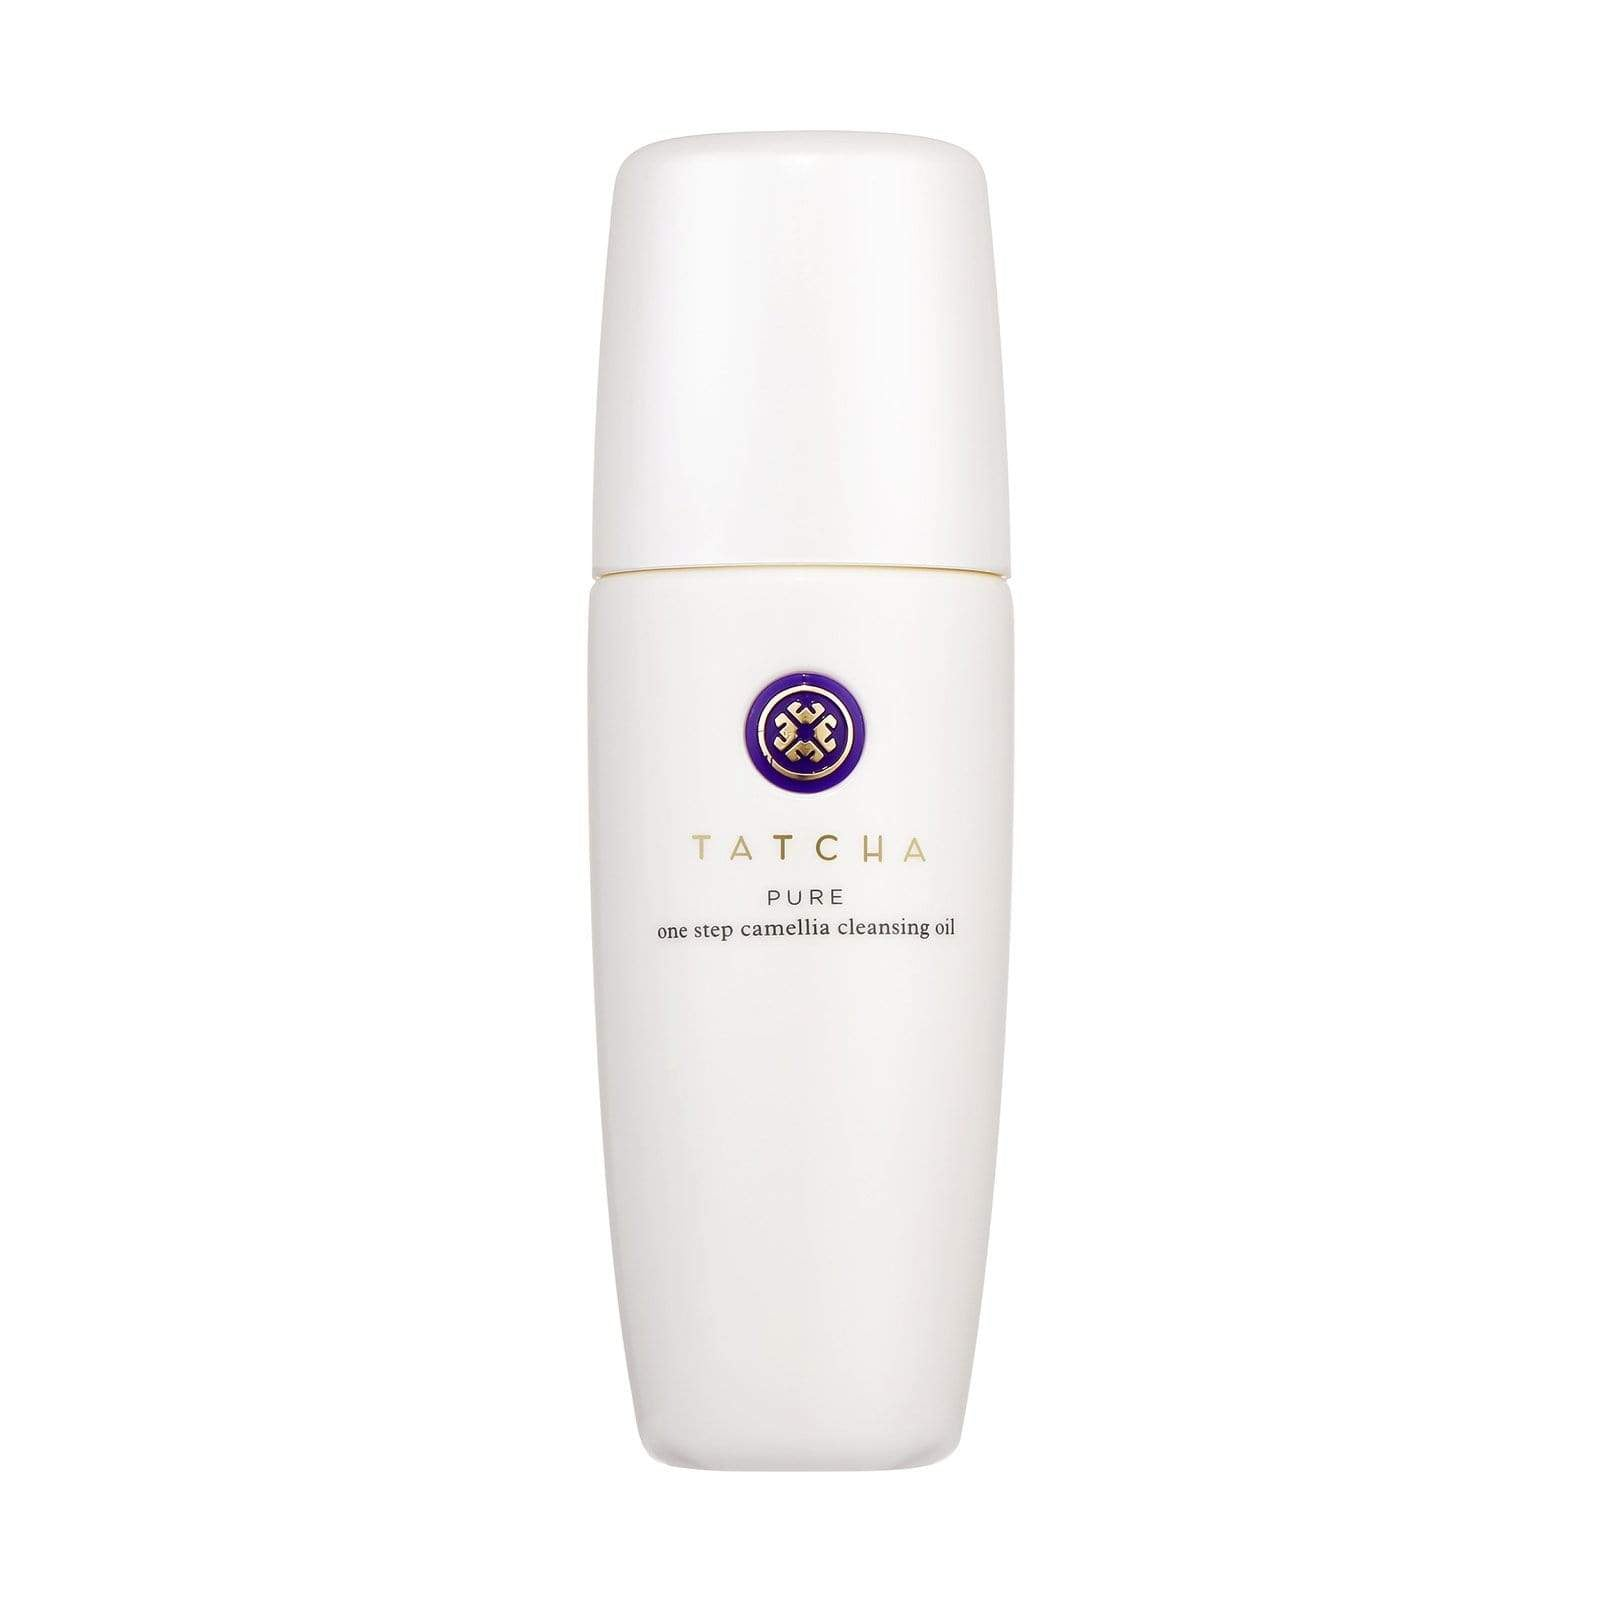 Tatcha Pure One Step Camellia Cleansing Oil (5.1 oz | 150ml), Skin Care, London Loves Beauty